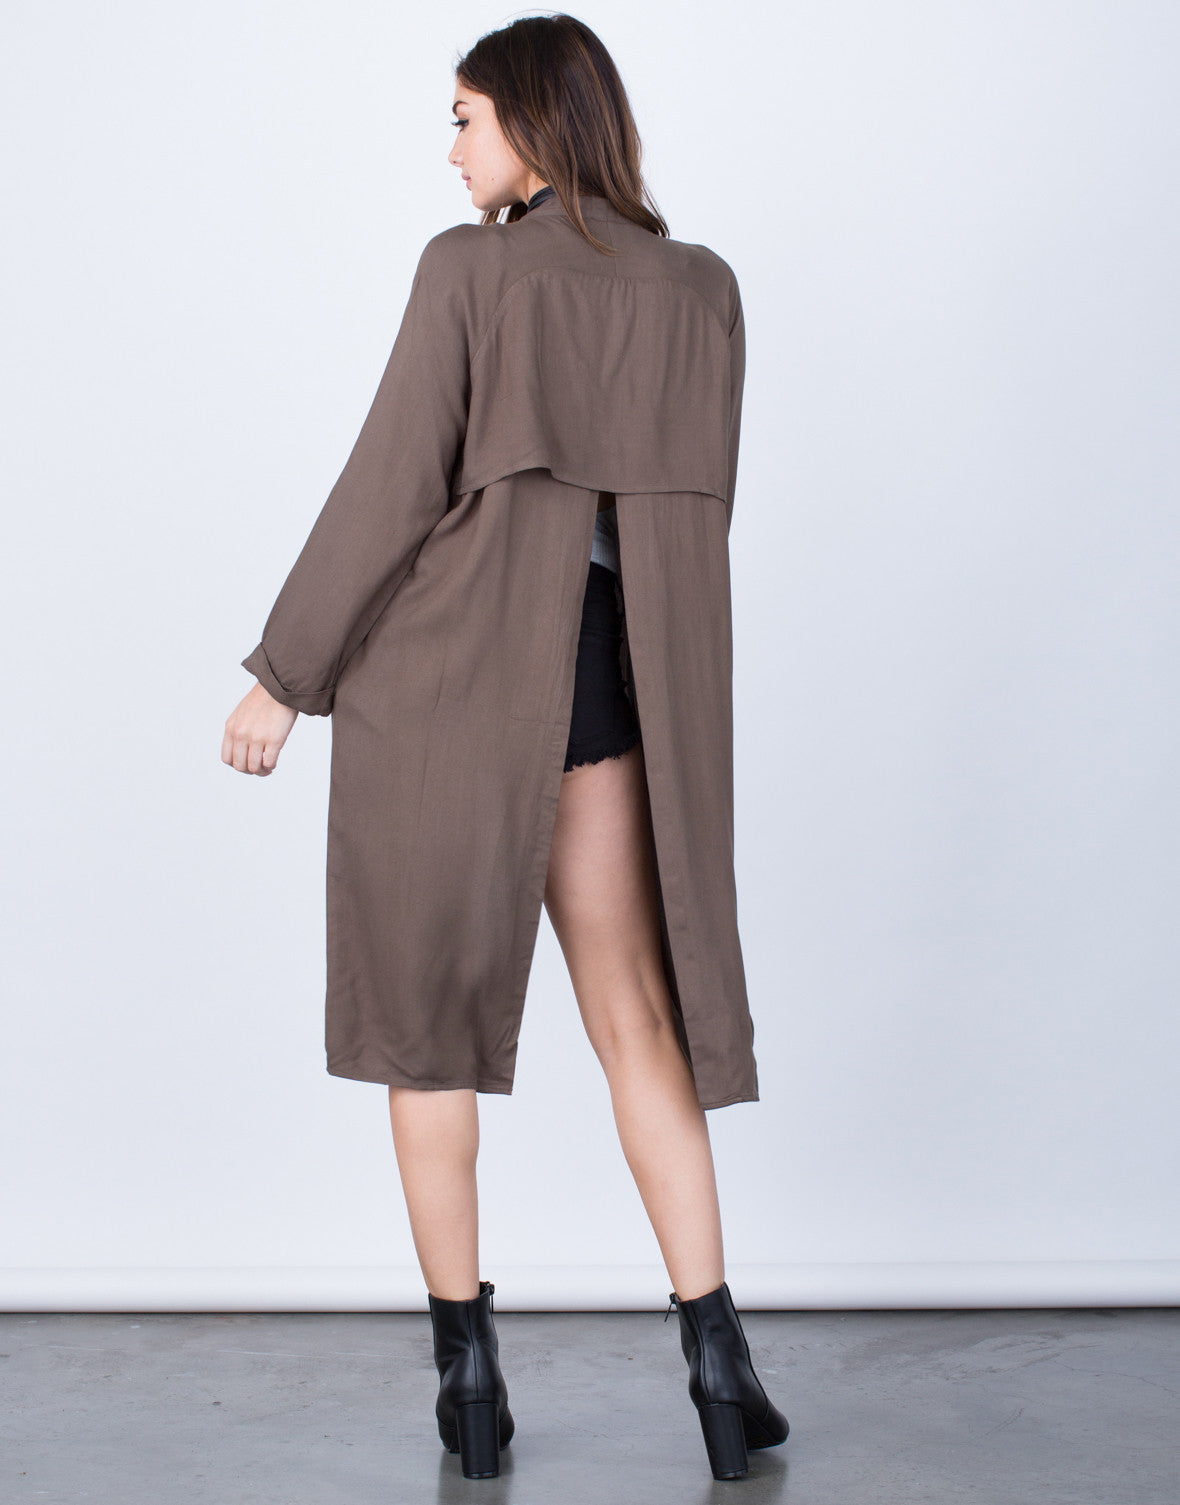 Back View of Open Back Jacket